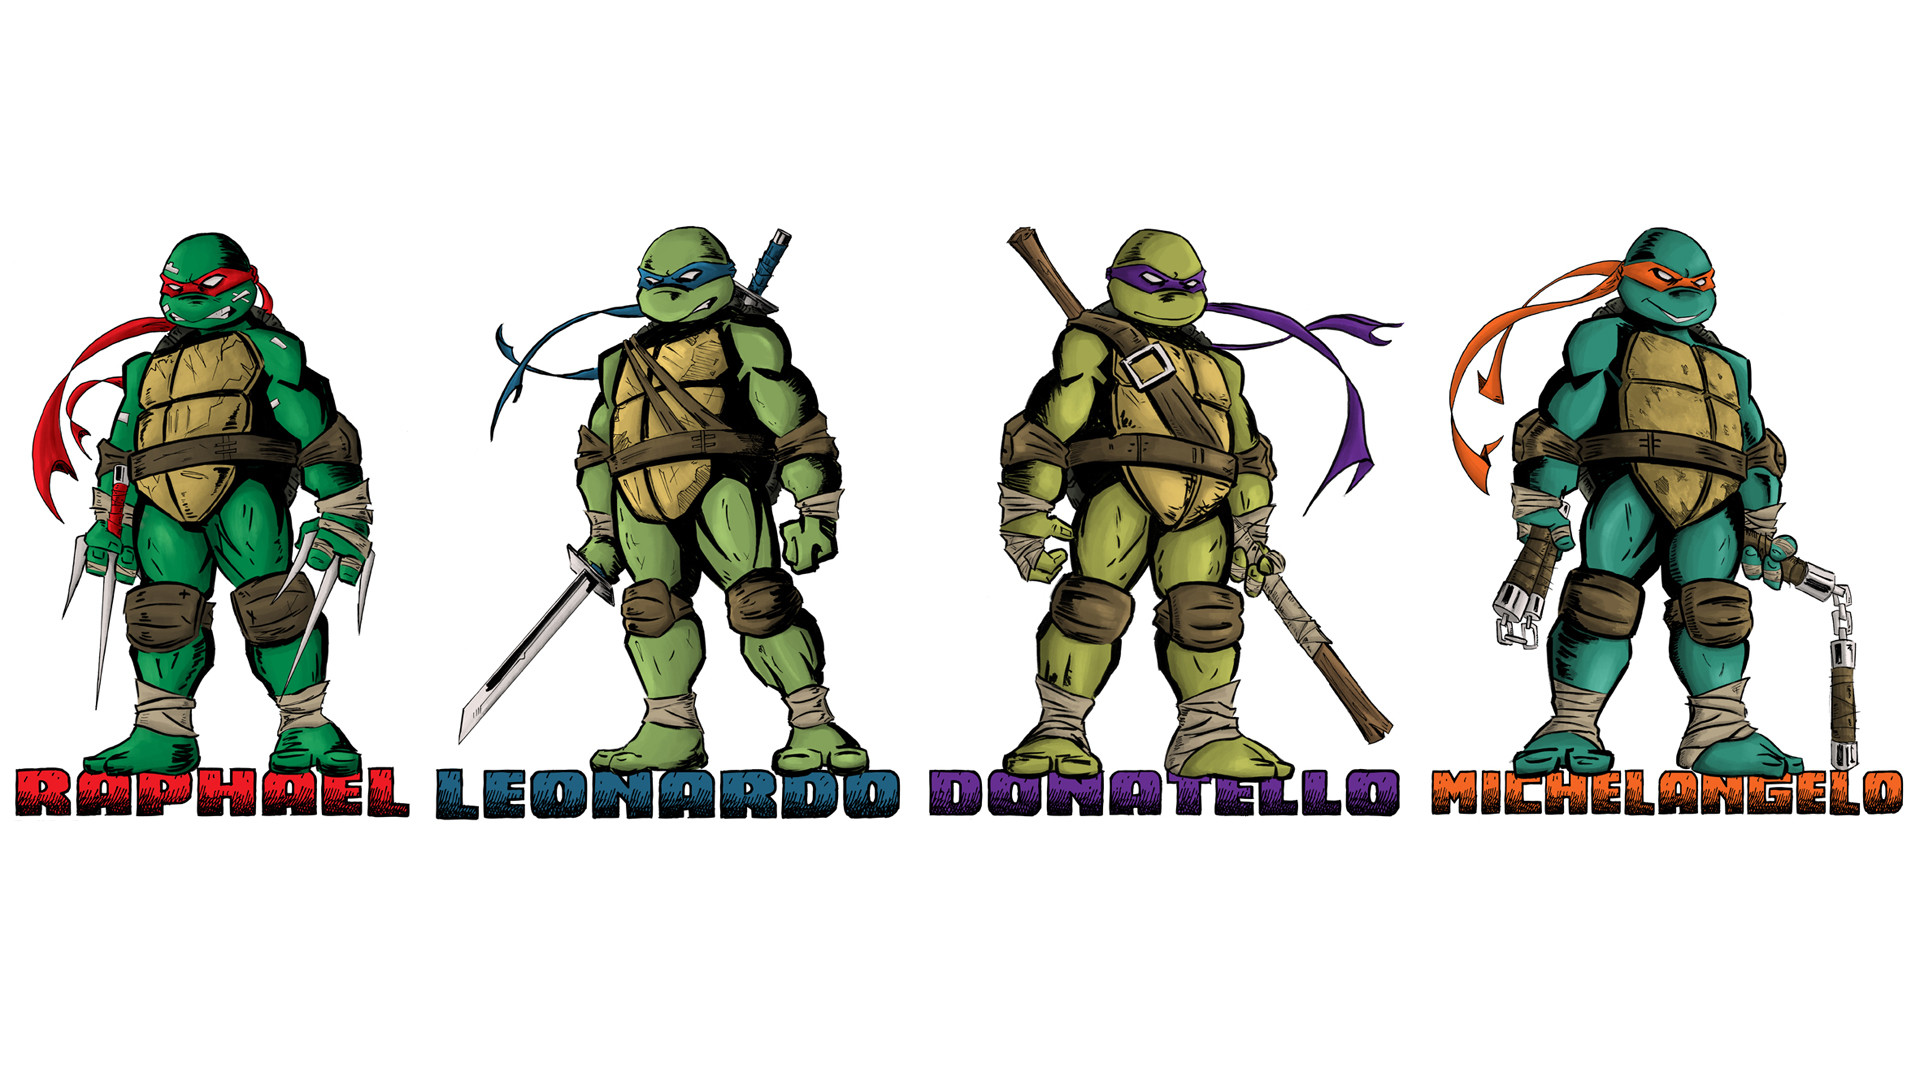 Res: 1920x1080, Desktop Ninja Turtles HD Wallpapers Images Download. Click on the image to  view full size and download.